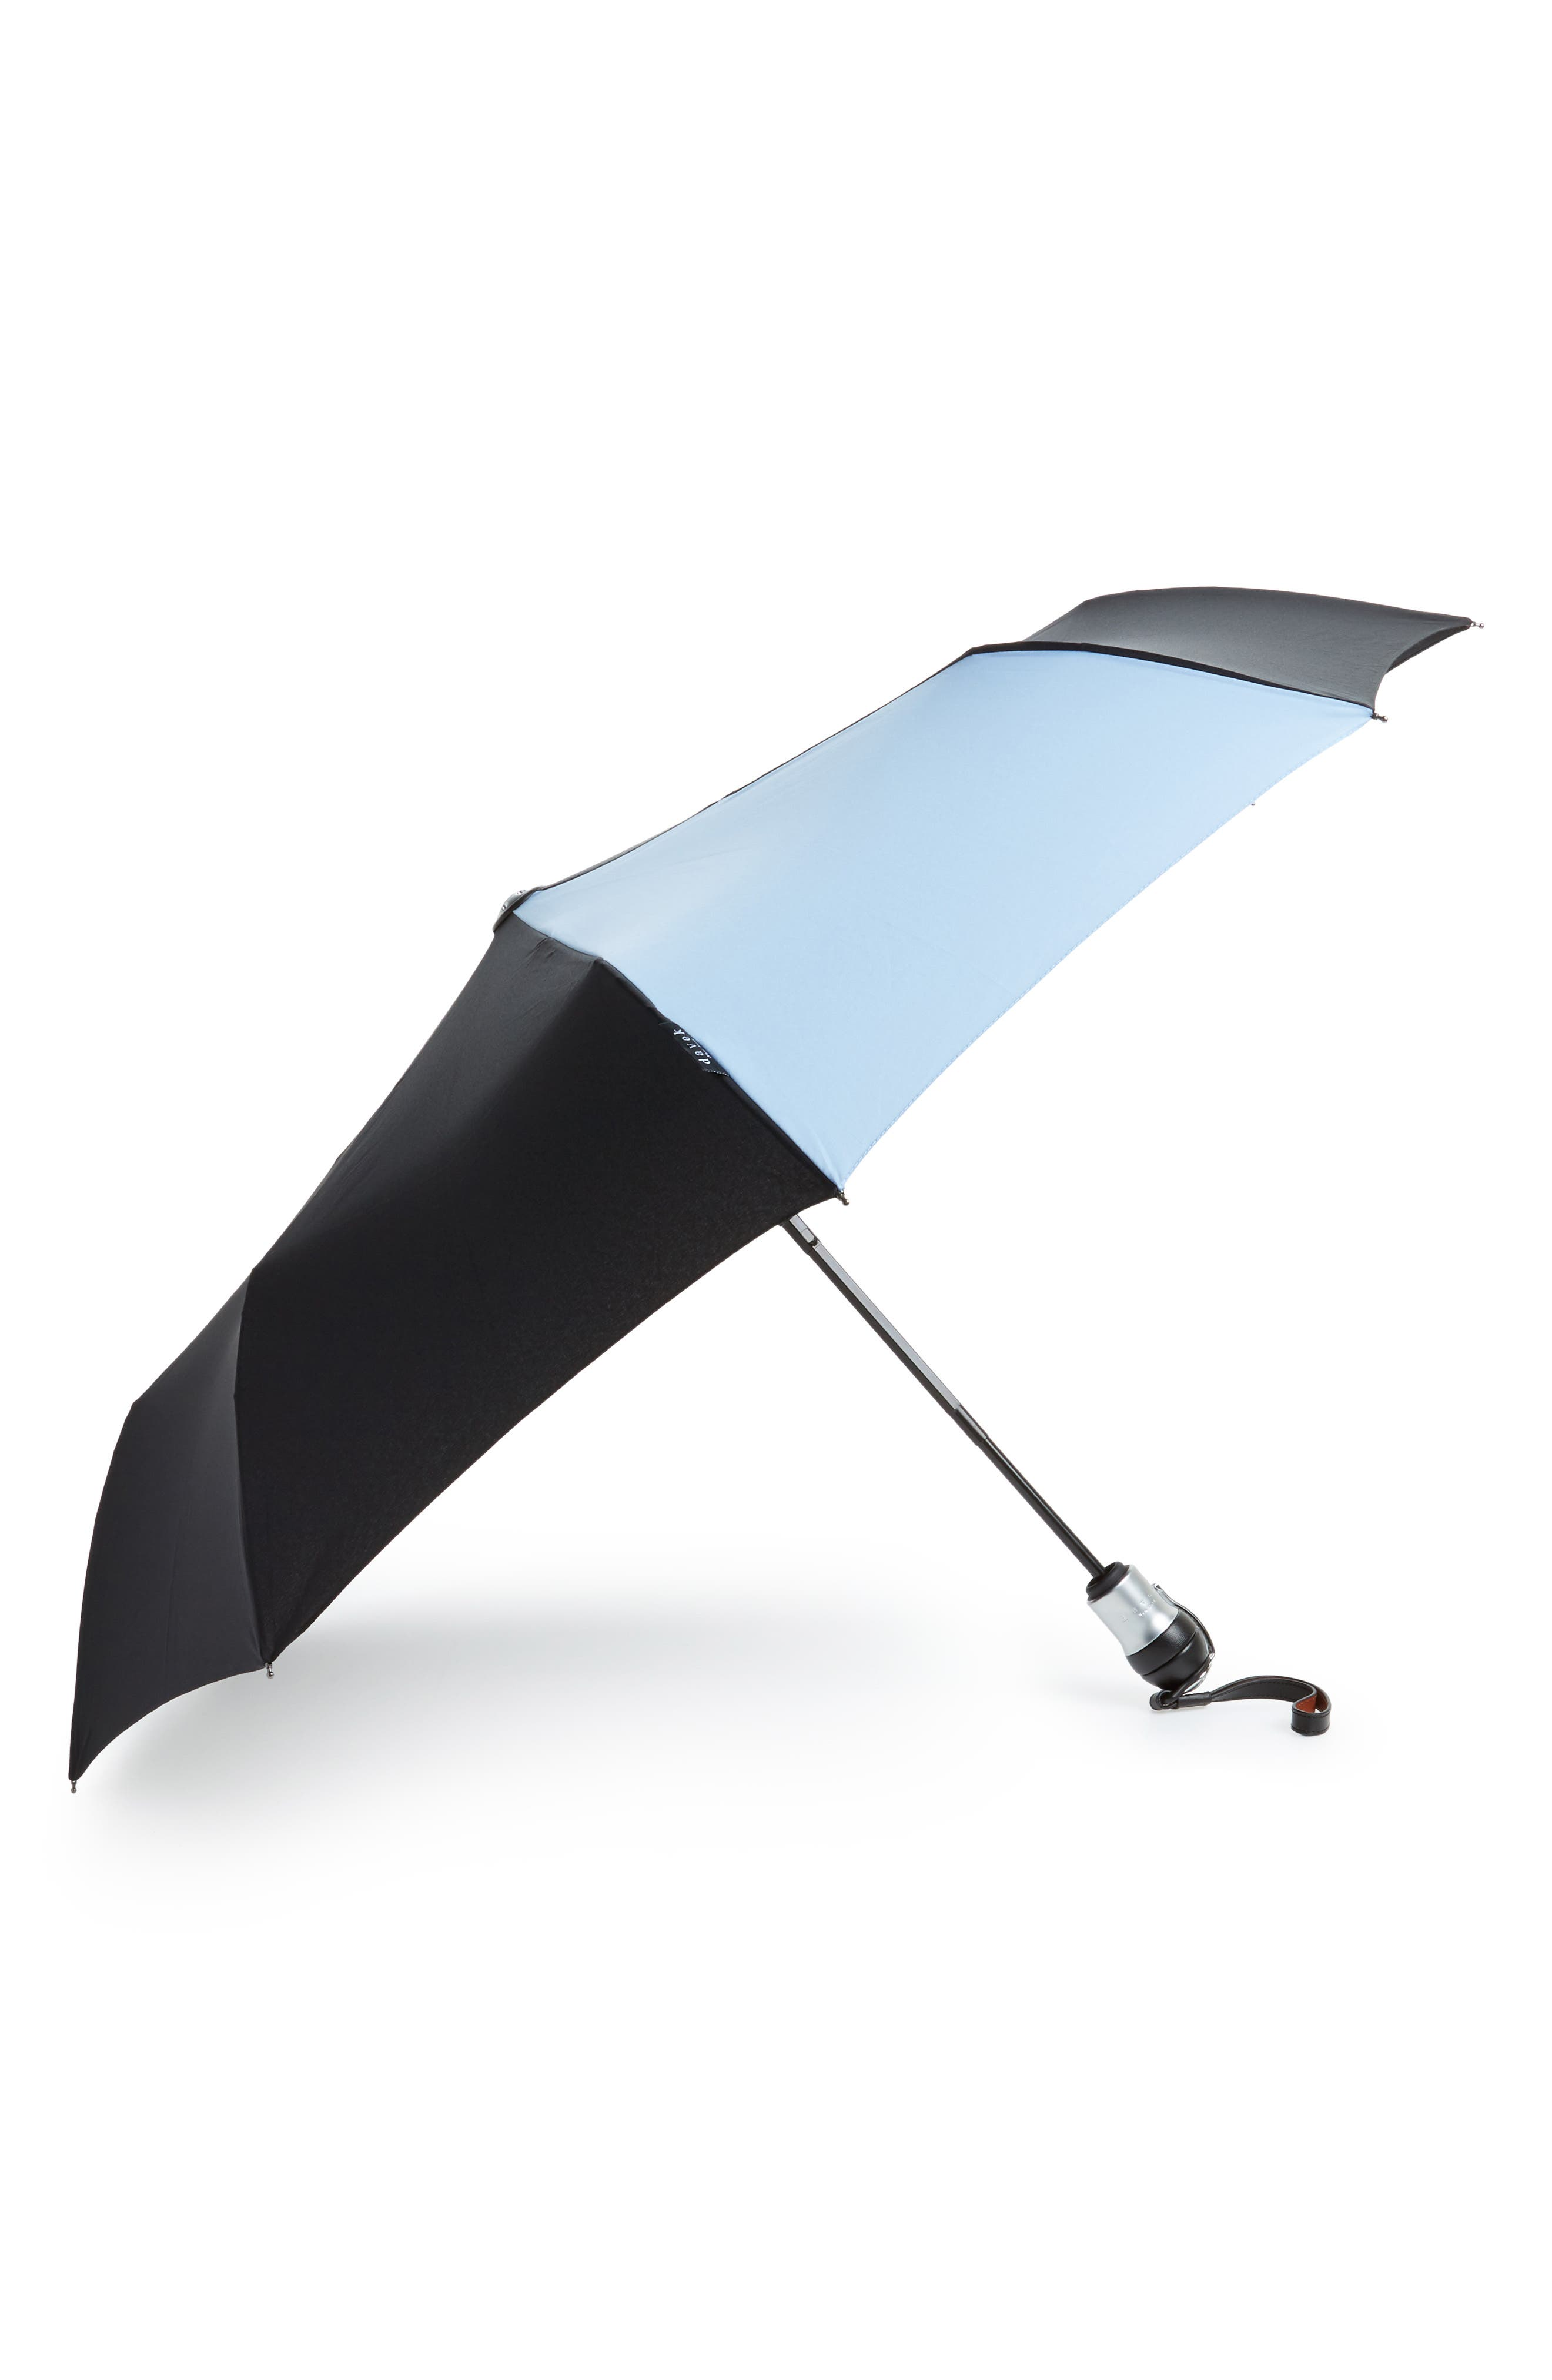 DAVEK Solo Medium Umbrella